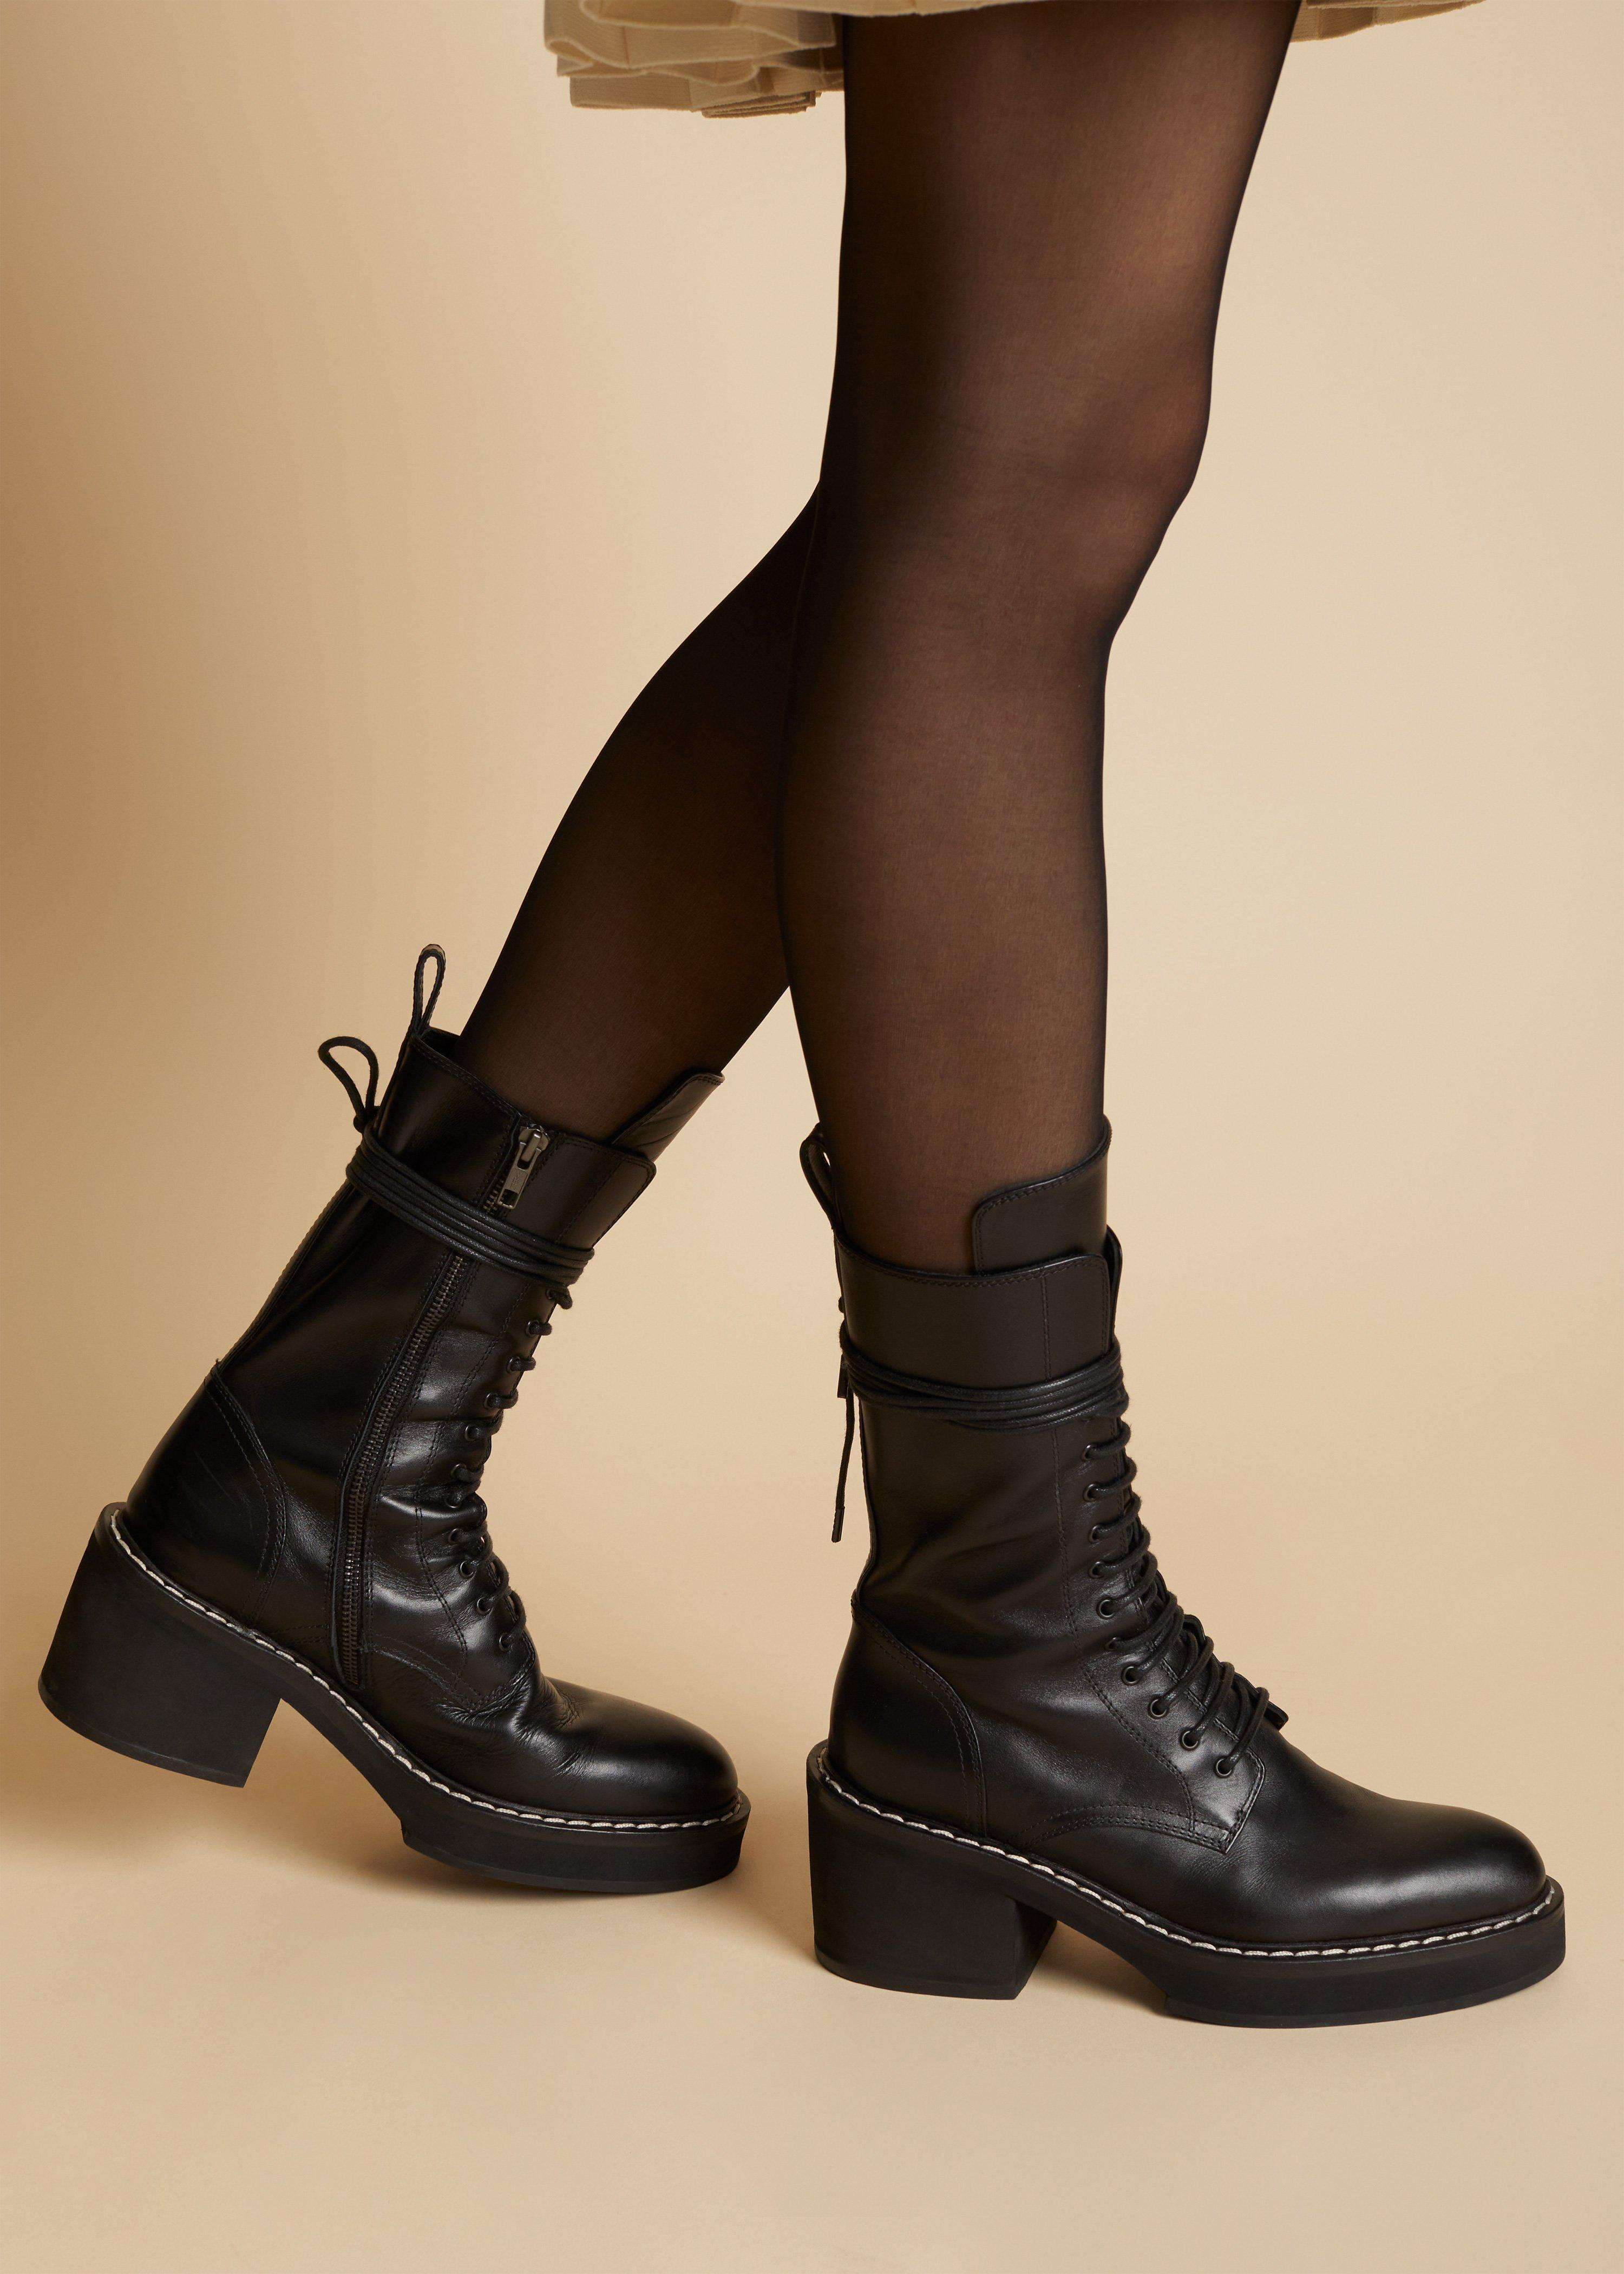 The Cody Boot in Black Leather 5